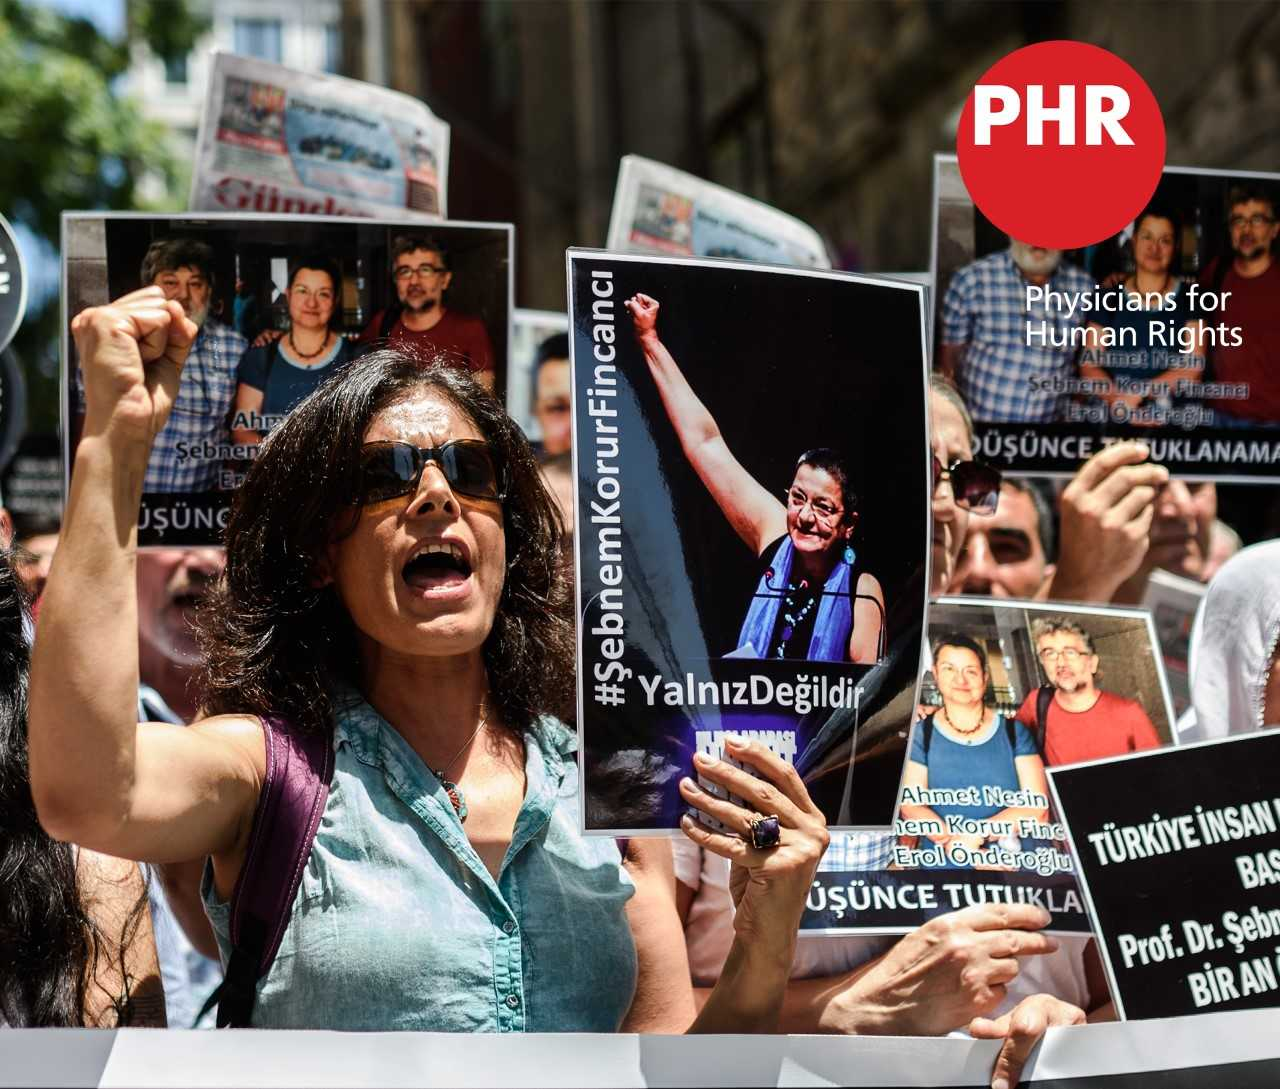 President Erdoğan: Stop Targeting Physician Human Rights Defenders